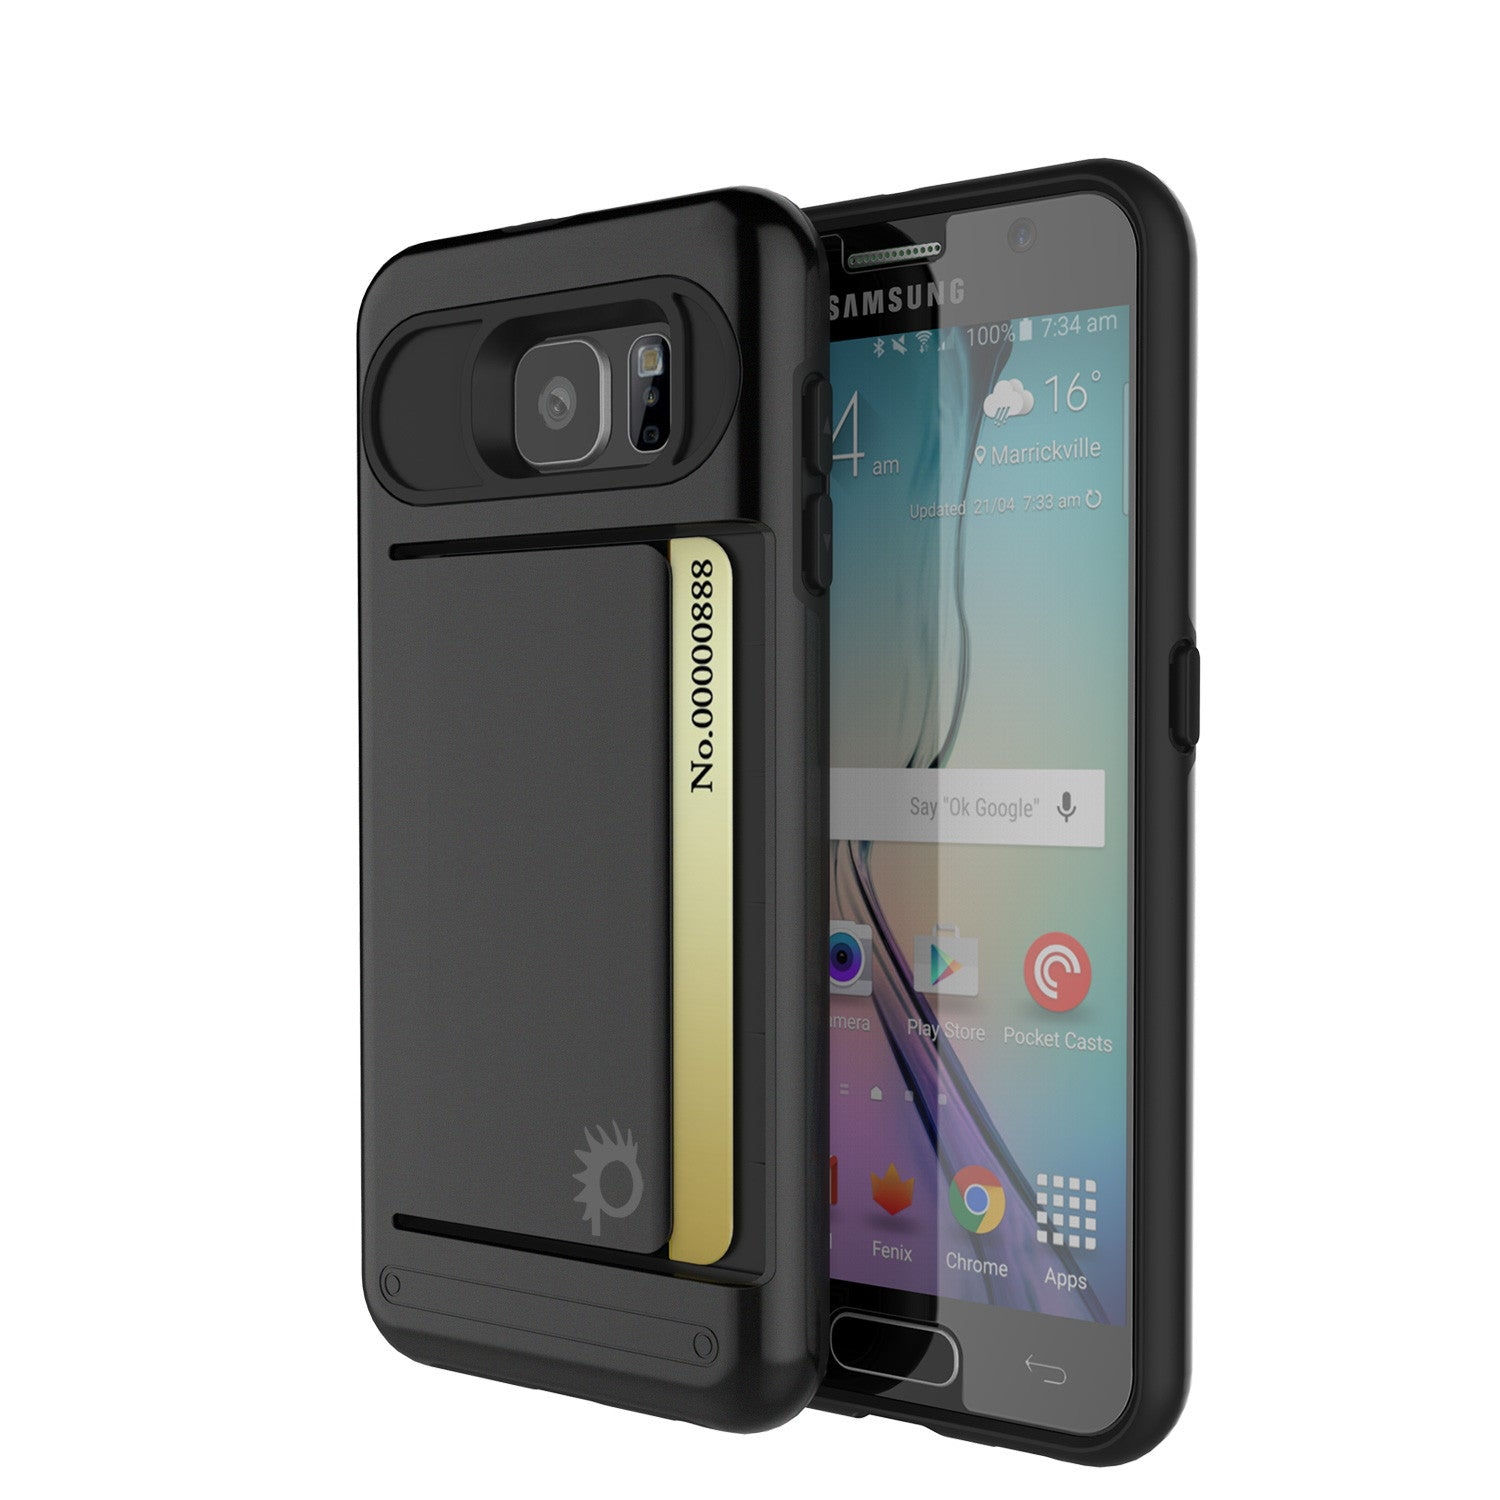 Galaxy s6 Case PunkCase CLUTCH Black Series Slim Armor Soft Cover Case w/ Tempered Glass